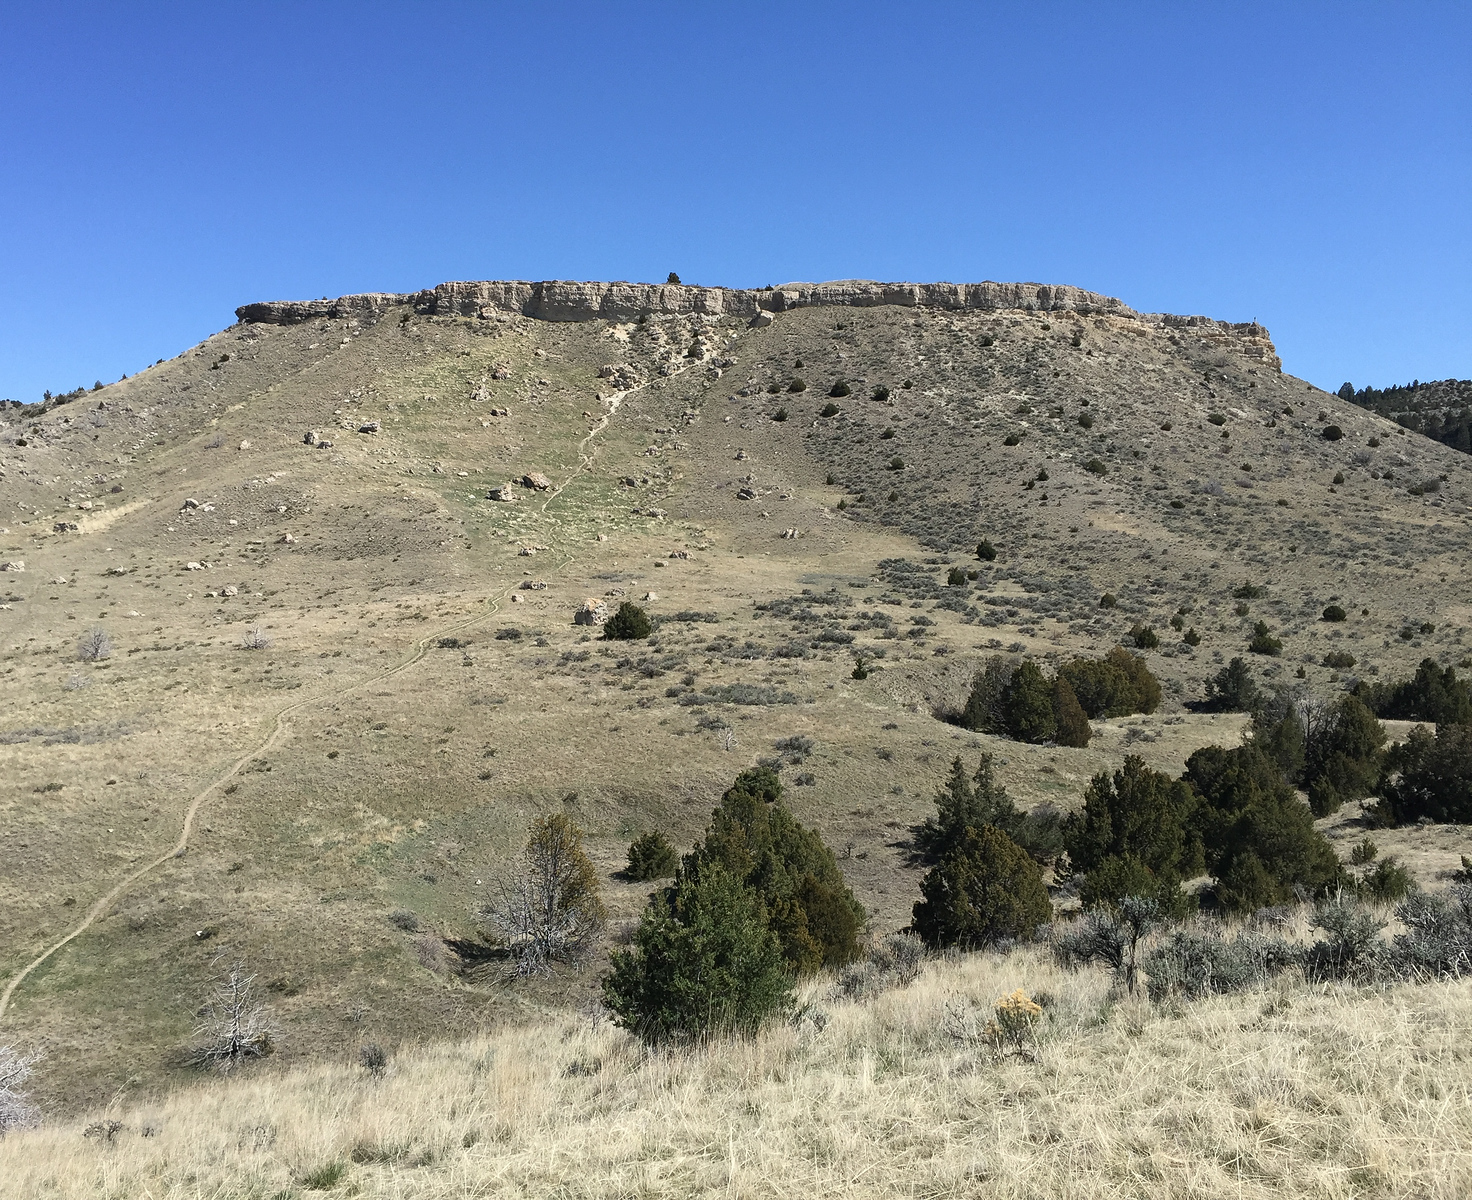 Native Americans herded bison over the edge of the cliff at Madison Buffalo Jump State Park. It's a fun day trip from Grey Cliffs Ranch in southwestern Montana.